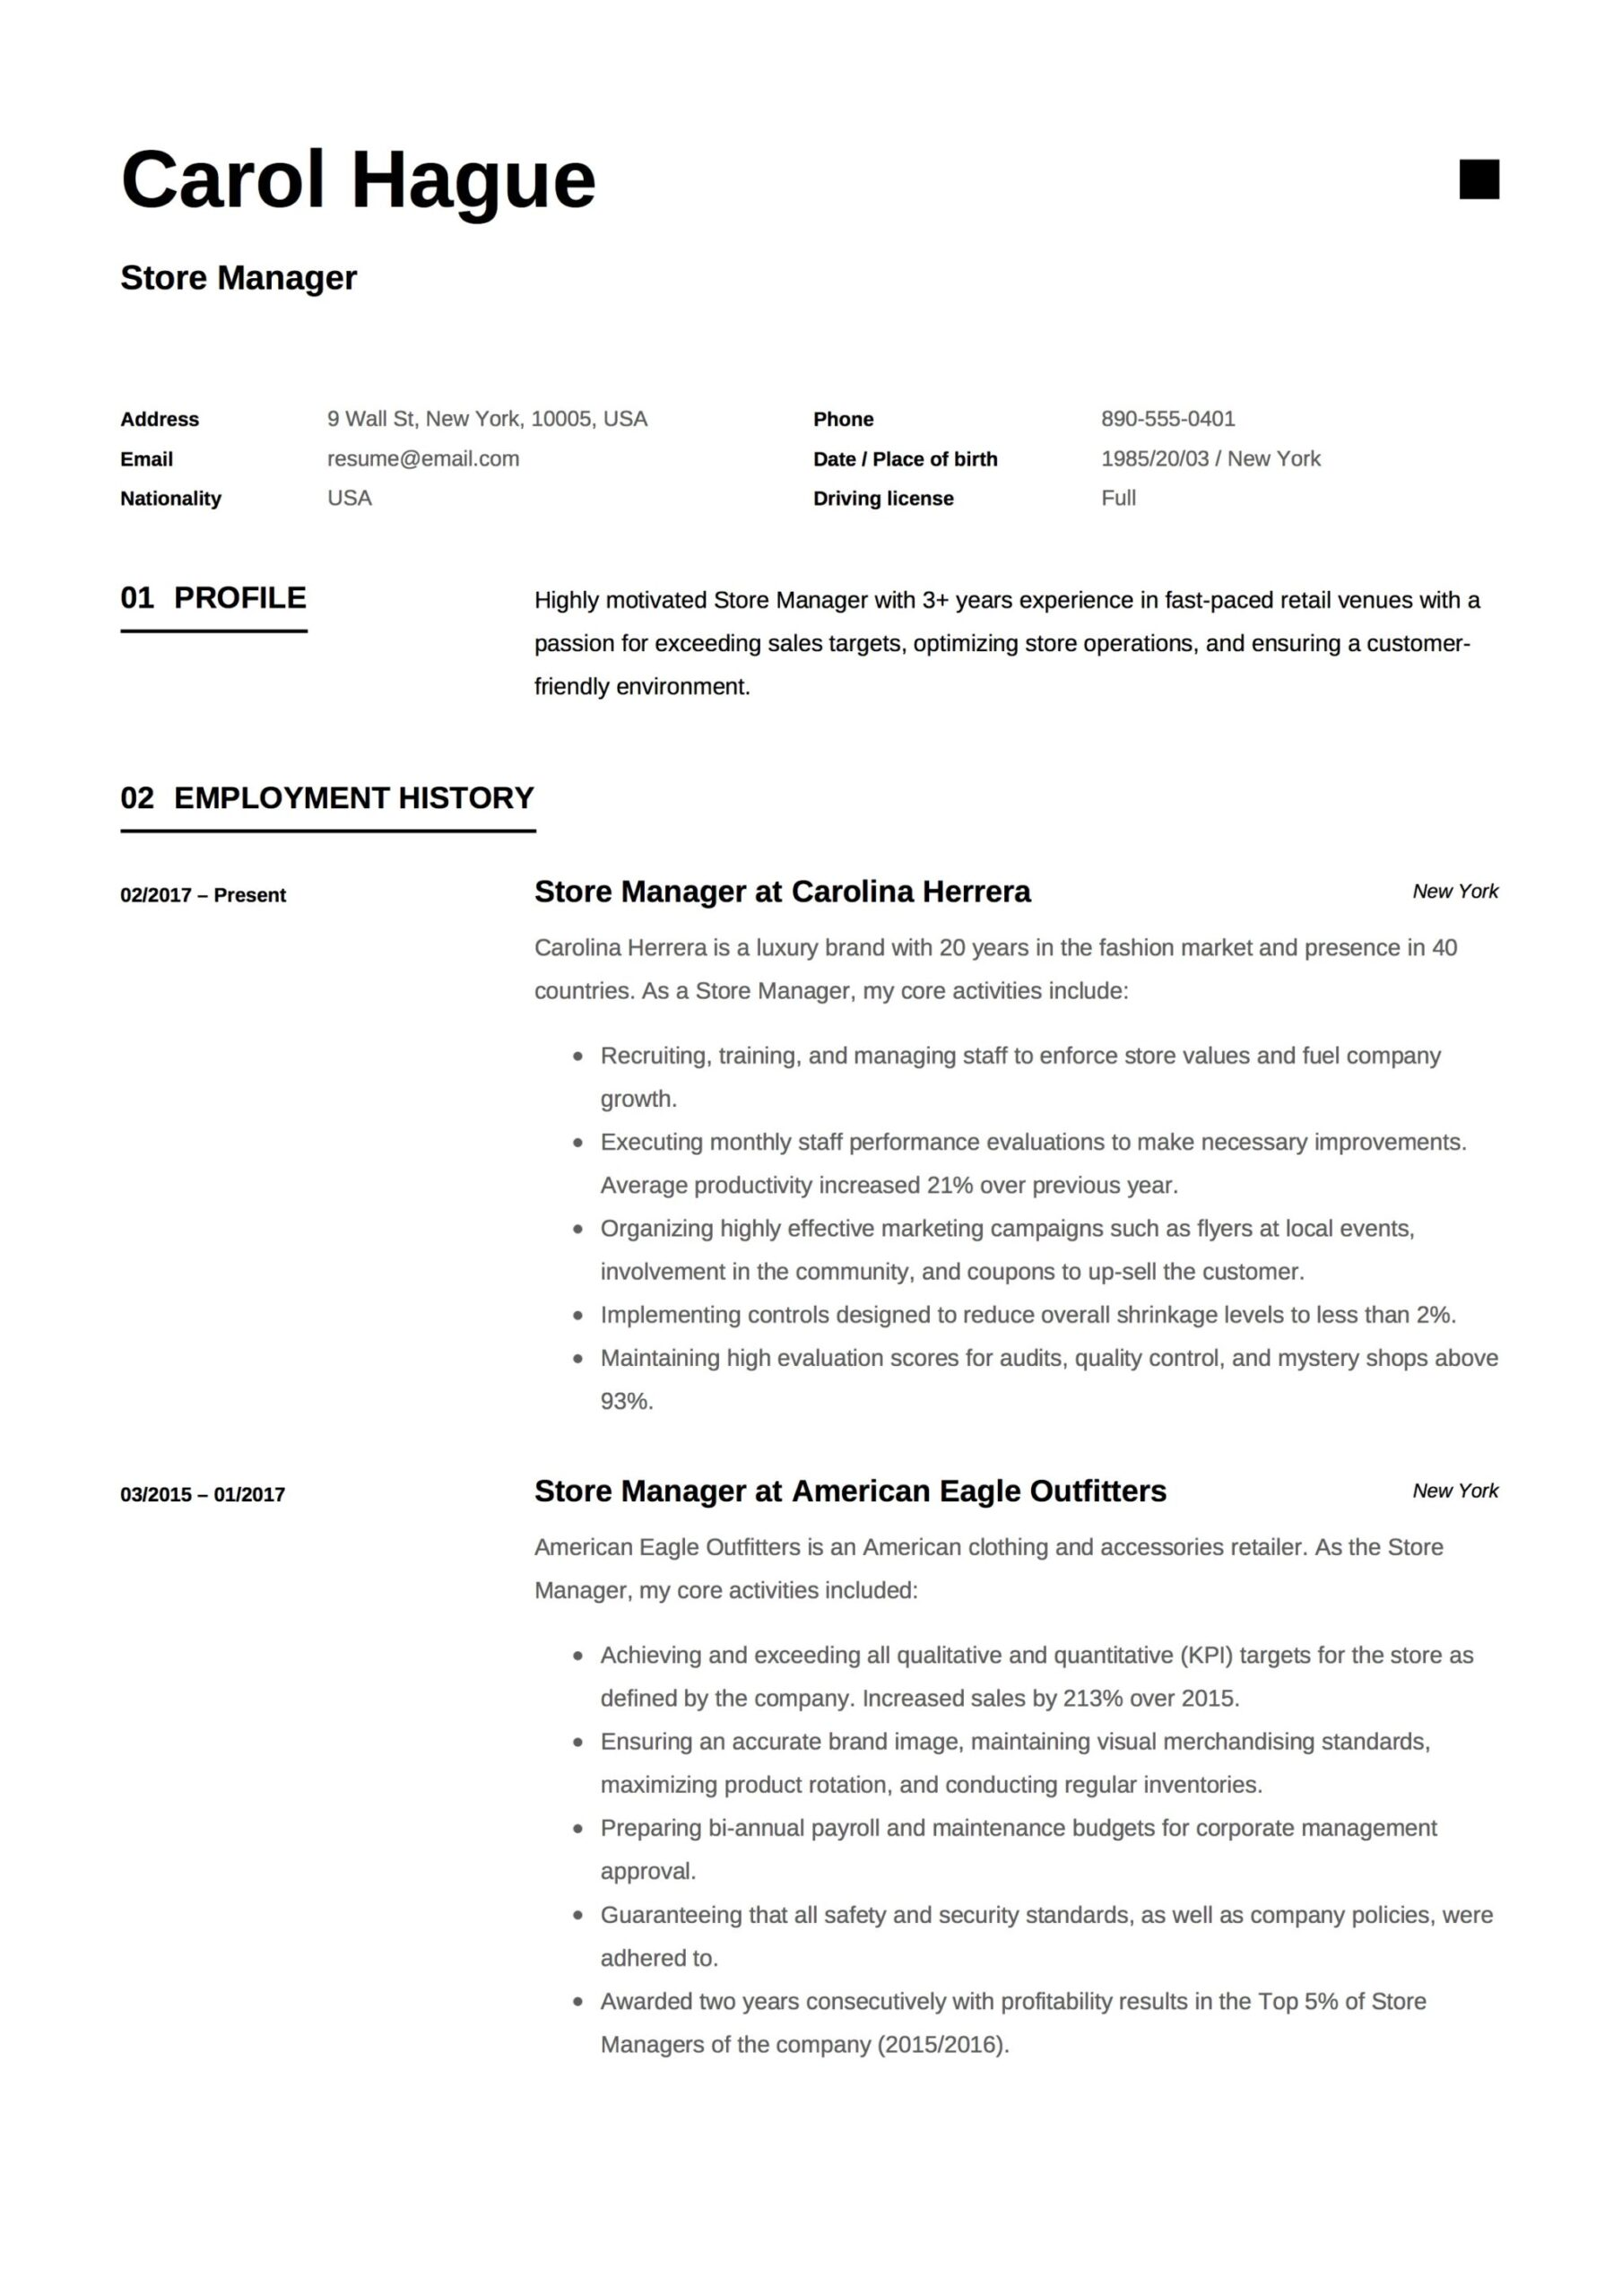 store manager resume guide samples pdf retail responsibilities for carol hague example Resume Retail Manager Responsibilities For Resume